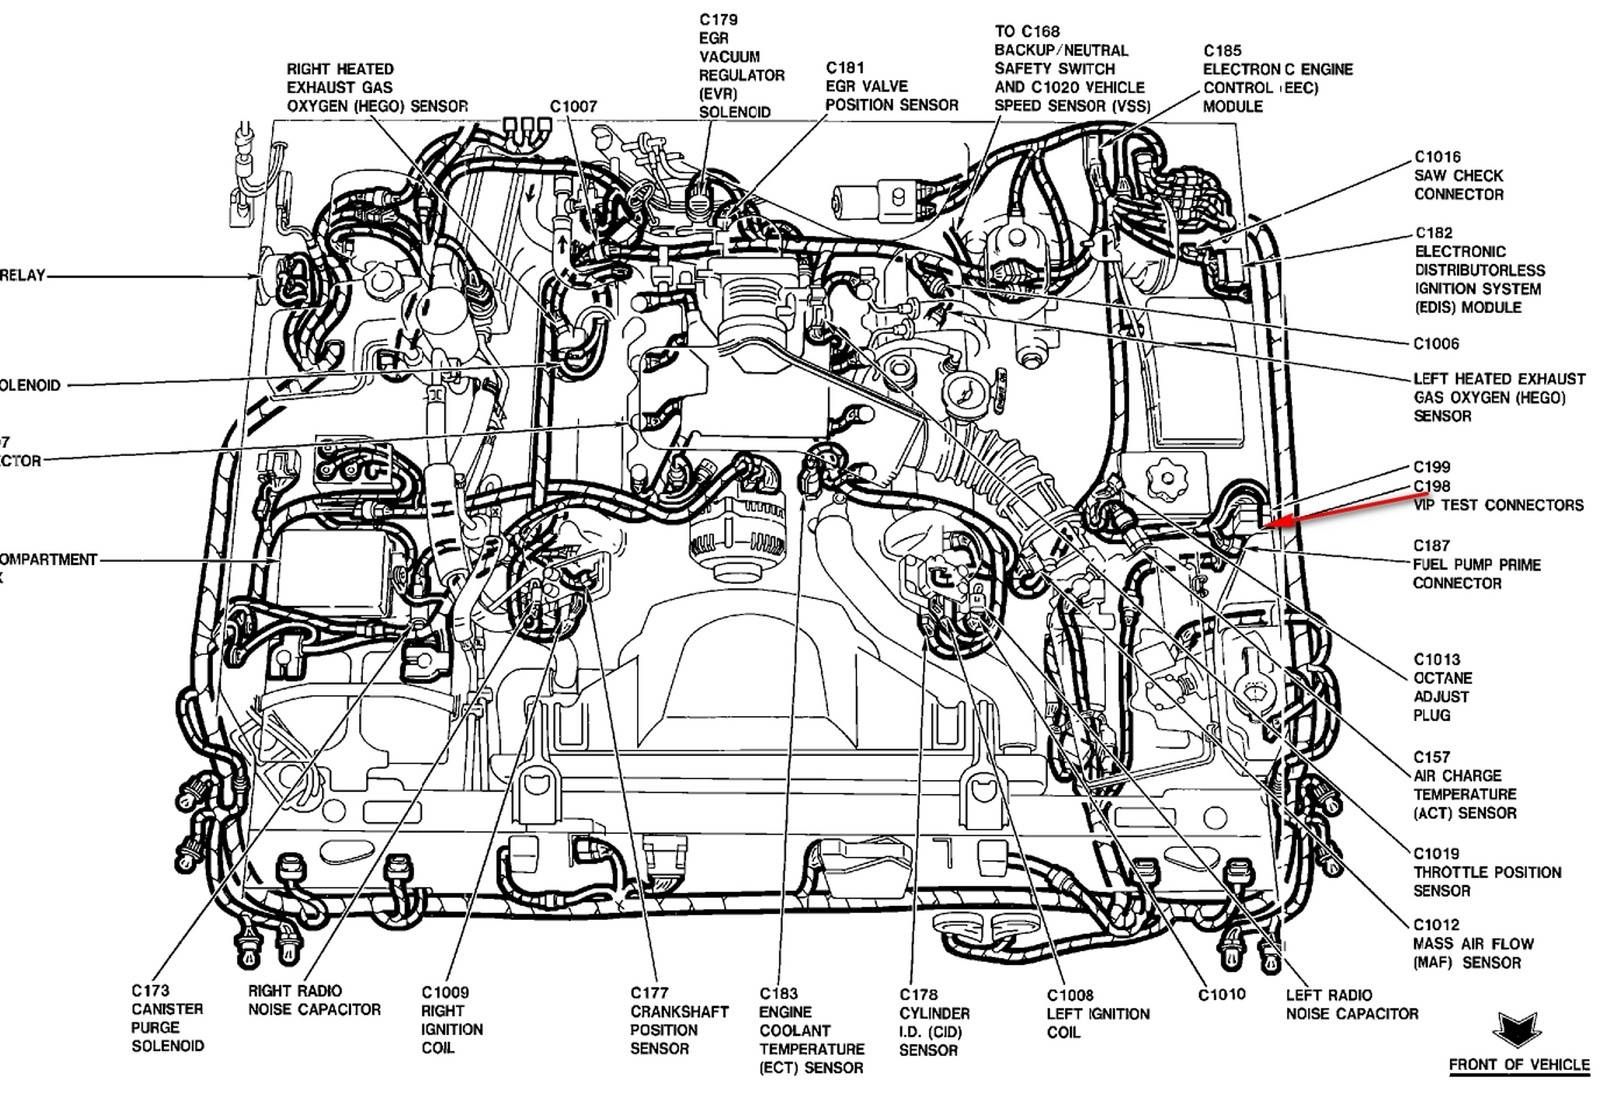 F250 Engine Diagram Wiring Library 1992 Ford Crown Victoria 4 6 Opinions About 2001 Power